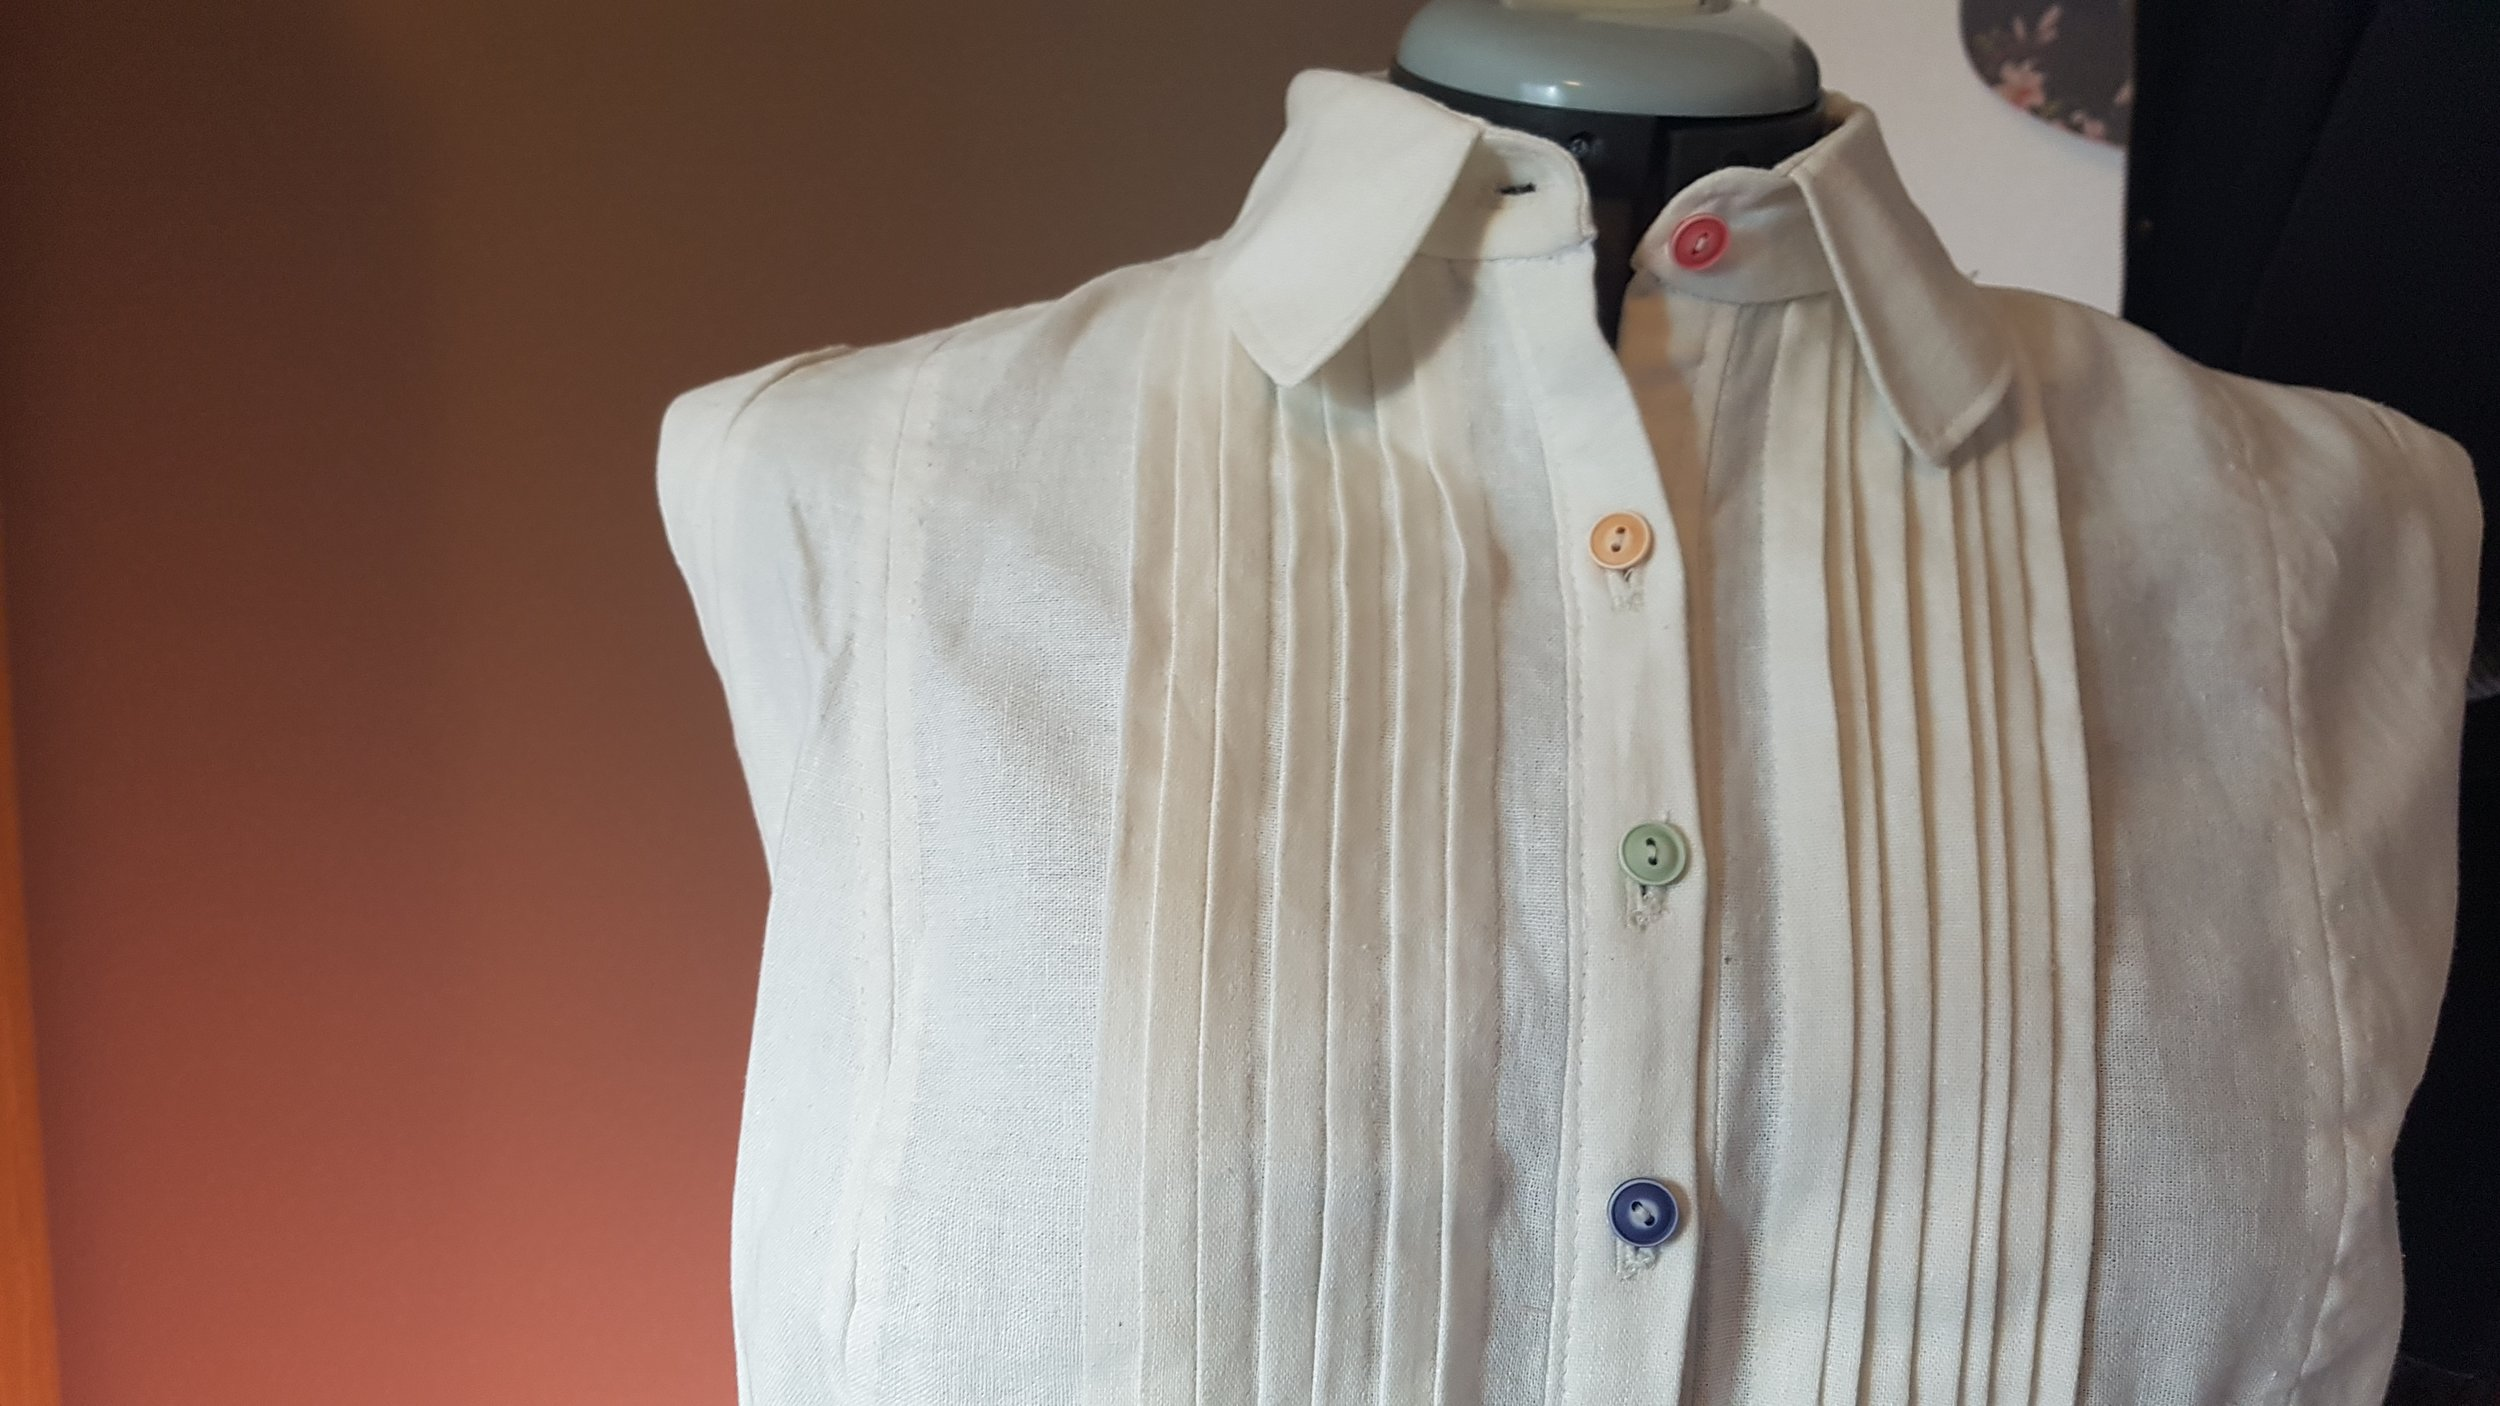 Caption: A close up of the Amelia Blouse from the collar down to the bustline. The four buttons of the placket are, respectively, pastel pink, an earthone yellow, pastel green, and a soft navy blue. The finish on them makes them look like glazed pottery.